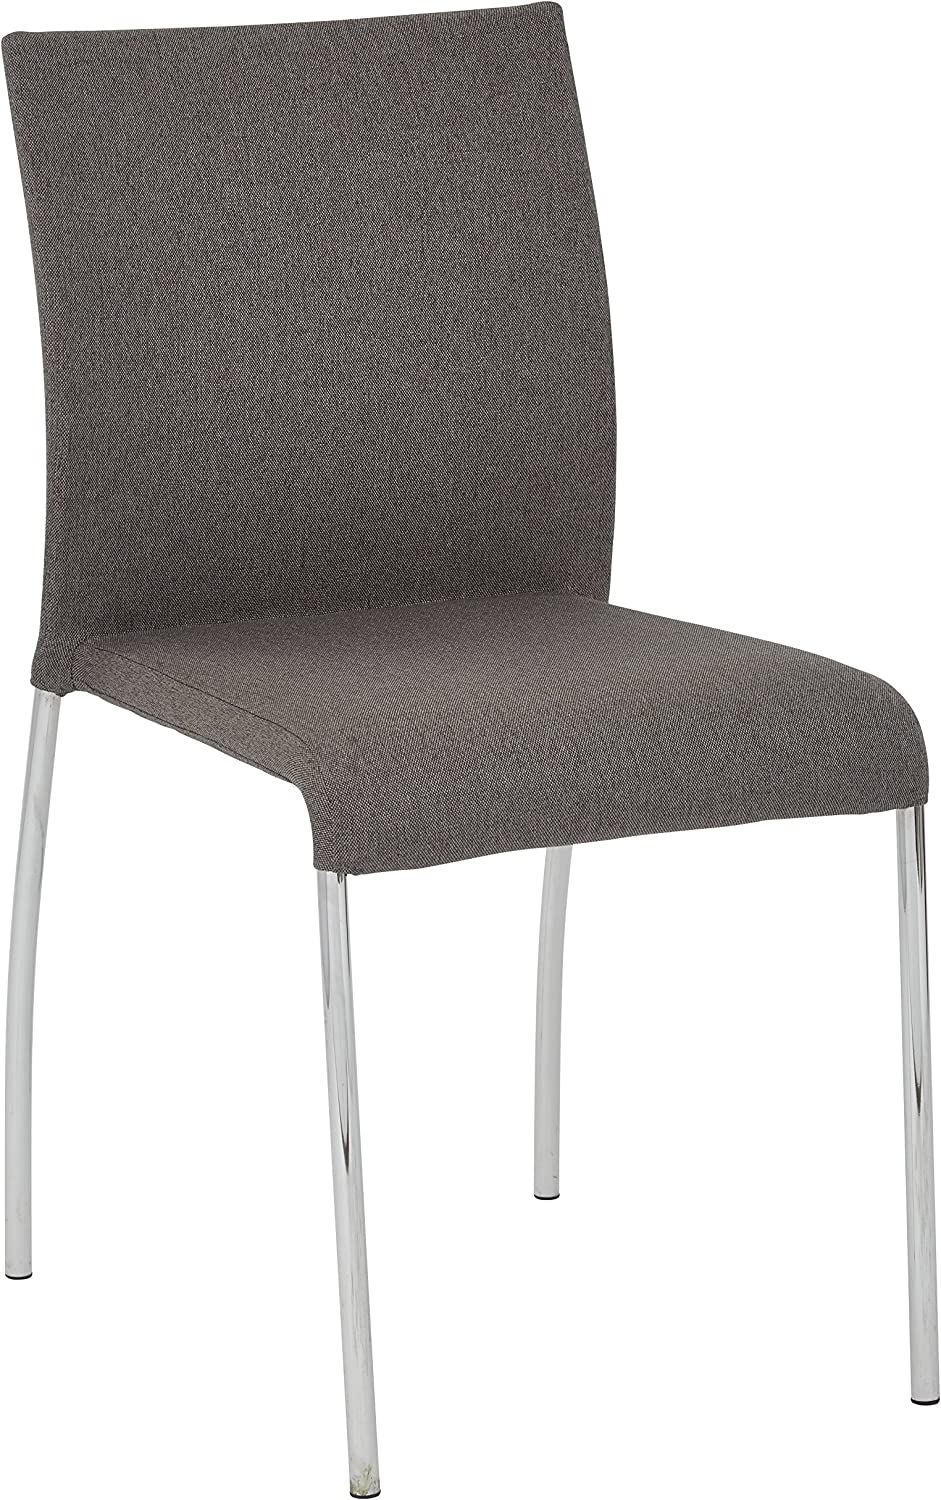 AVE SIX Conway Upholstered Stacking Chair with Chrome Legs, 4-Pack, Smoke